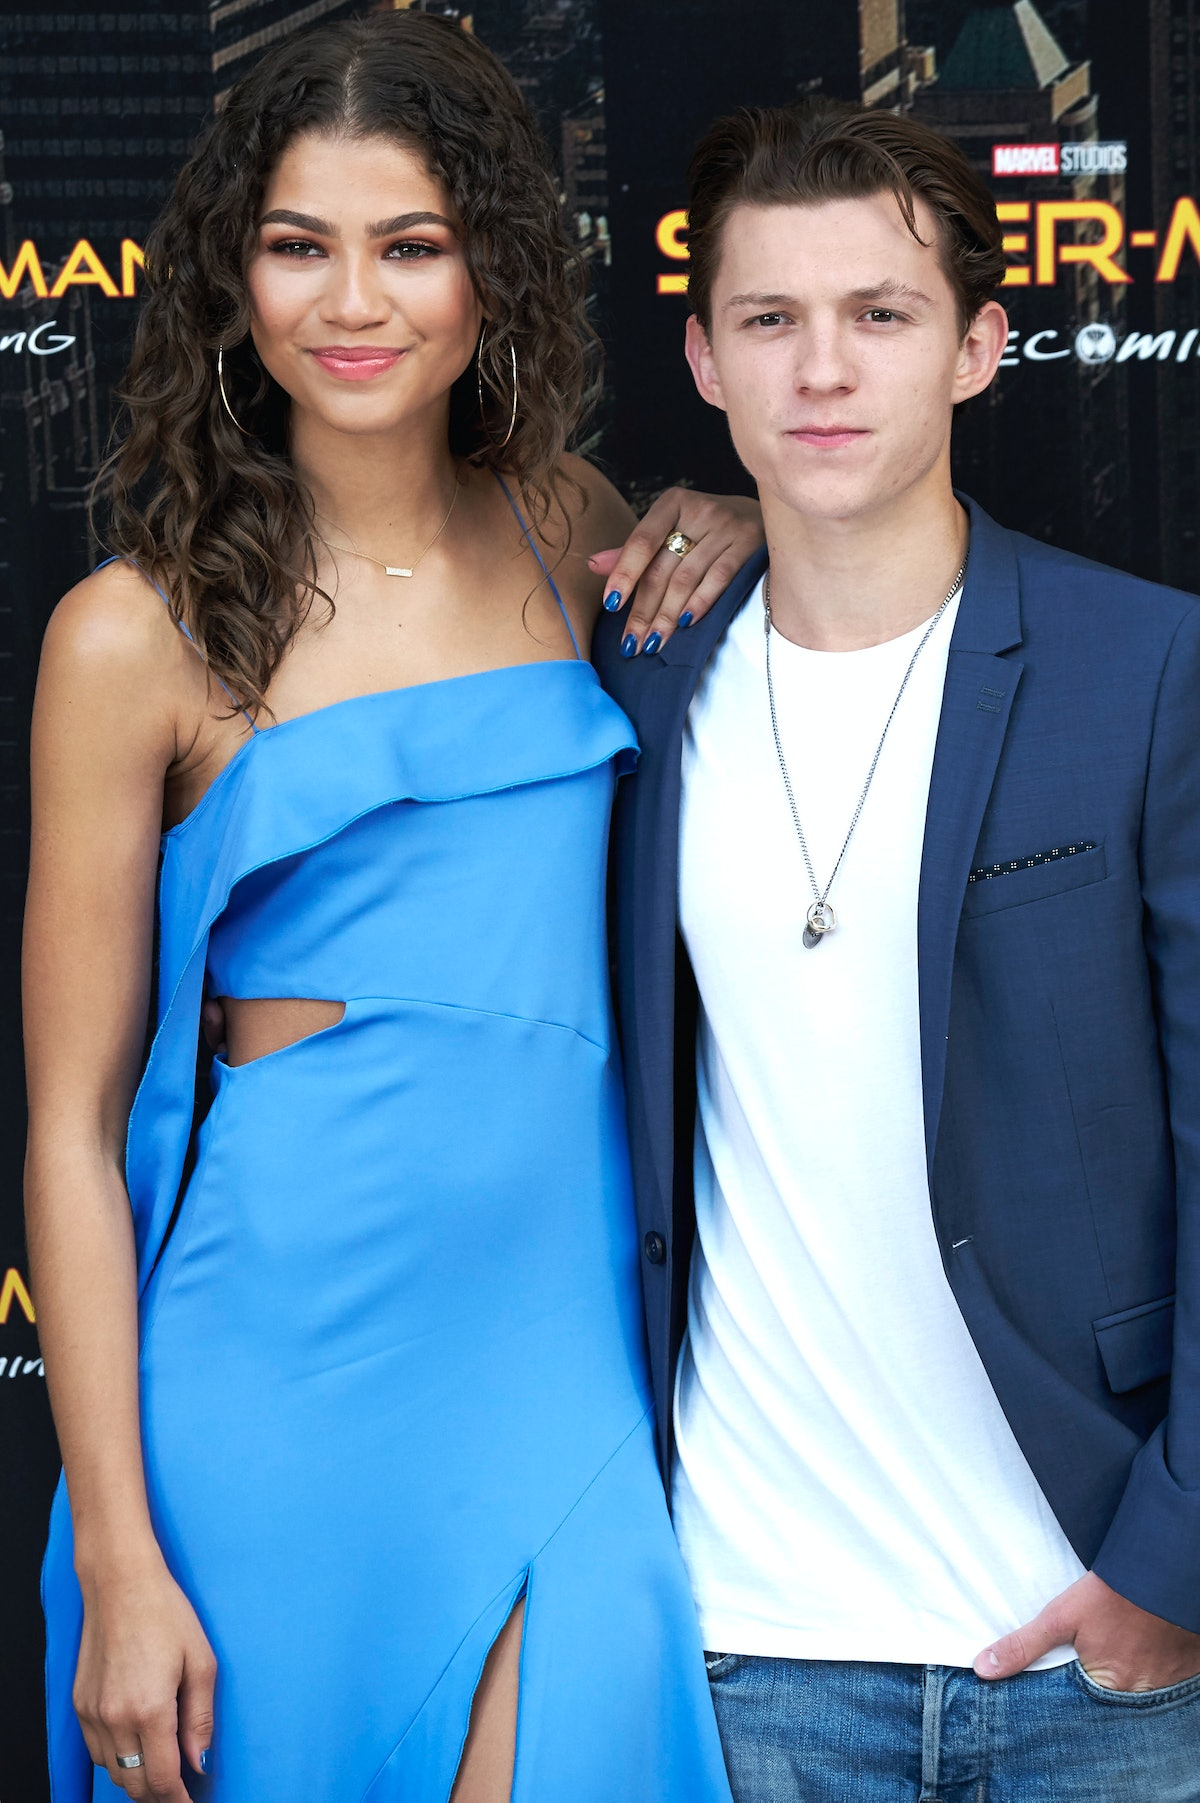 MADRID, SPAIN - JUNE 14:  Actress Zendaya and actor Tom Holland attend 'Spider-Man: Homecoming' phot...